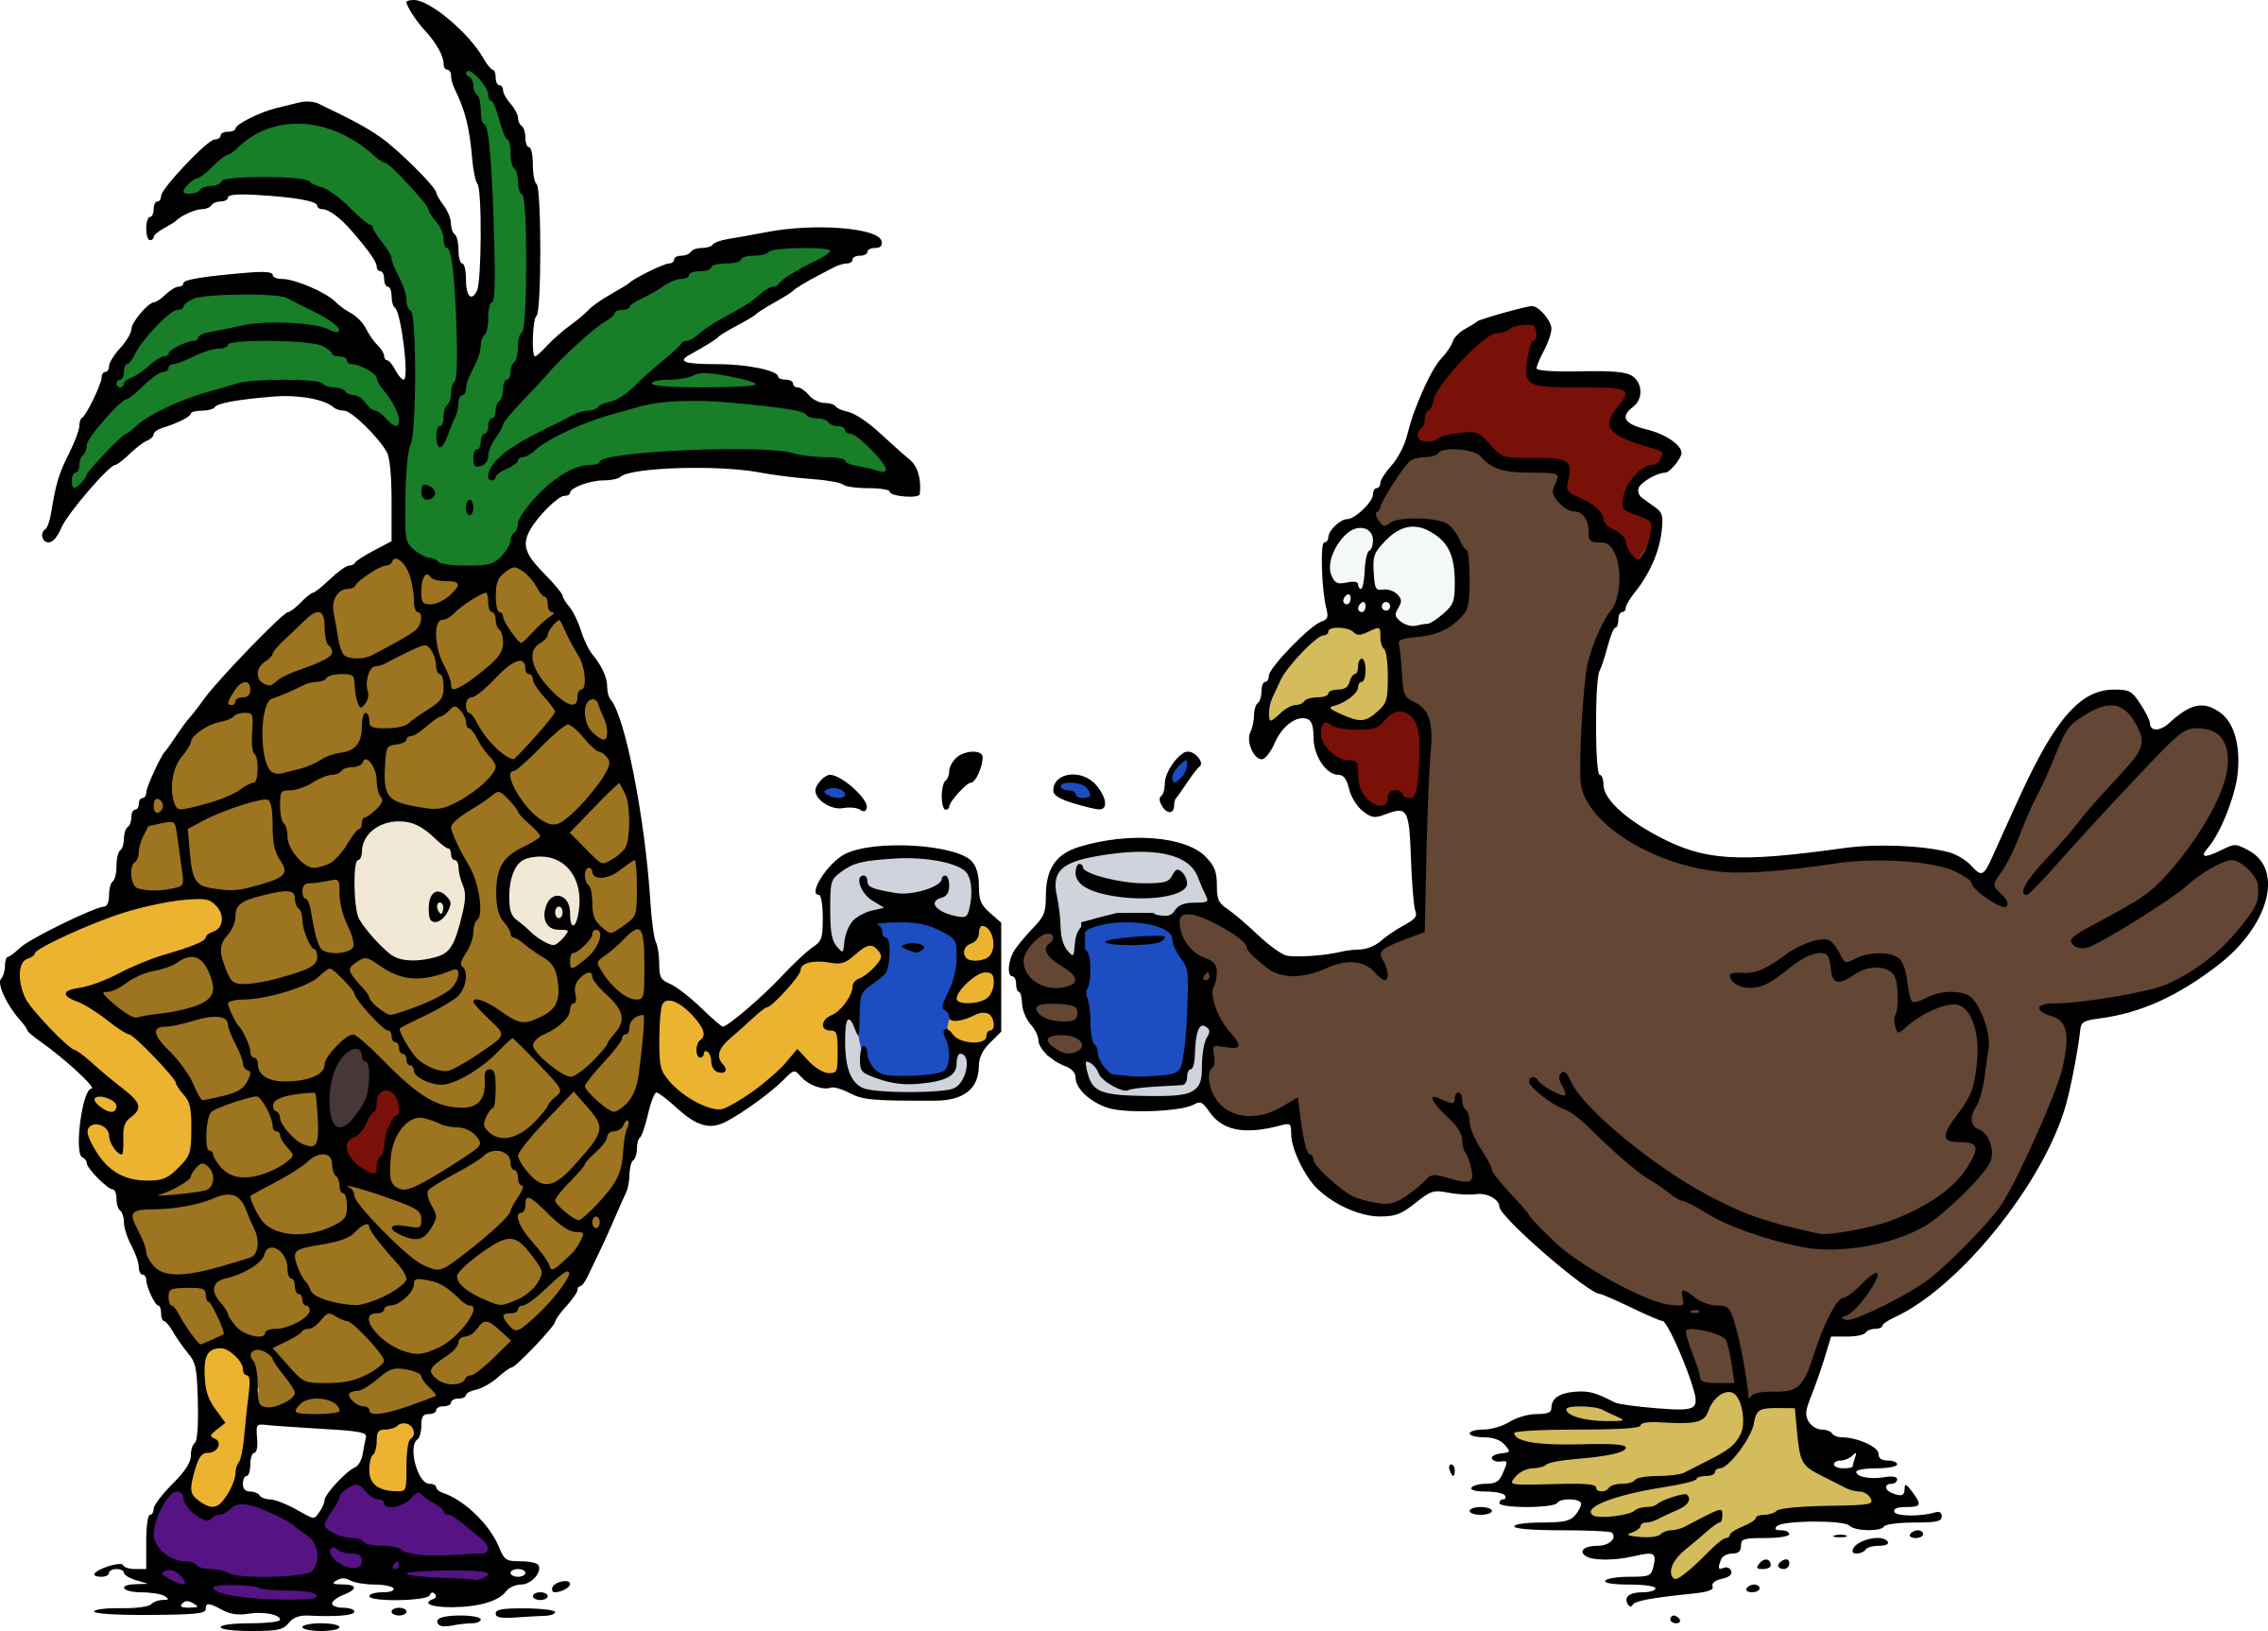 Pineapple and chicken cheers. Drinks clipart cheer